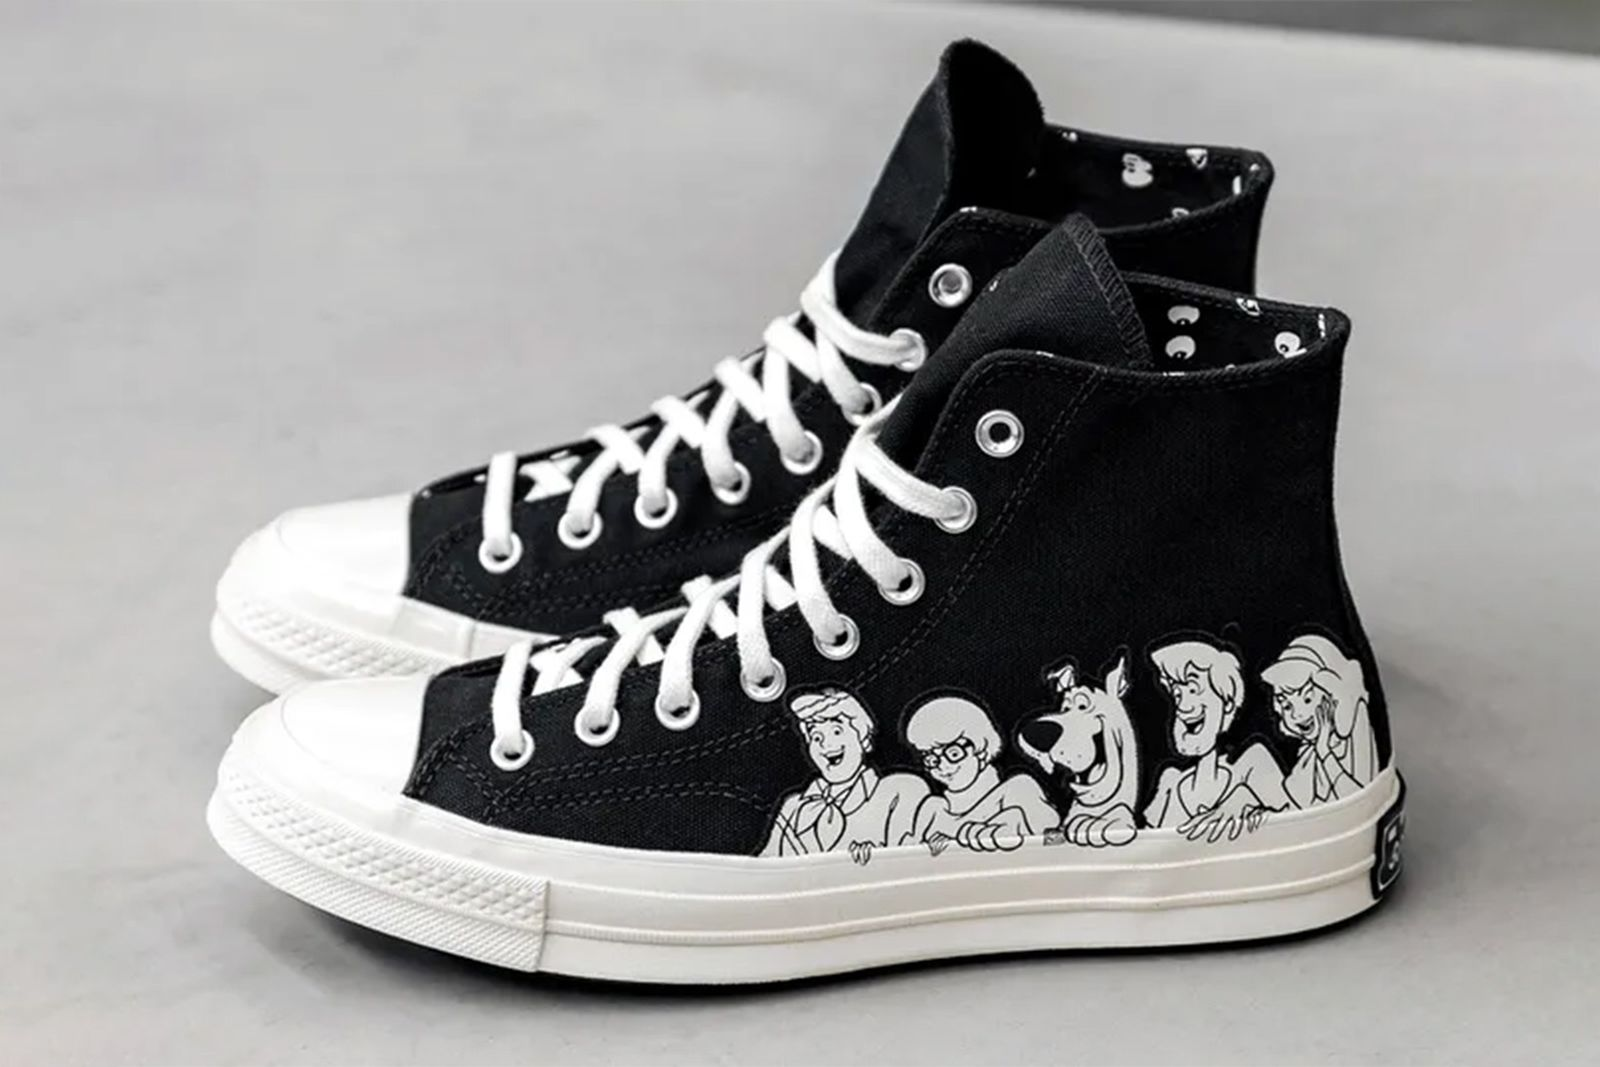 scooby doo-themed converse chuck 70 hi in black and white